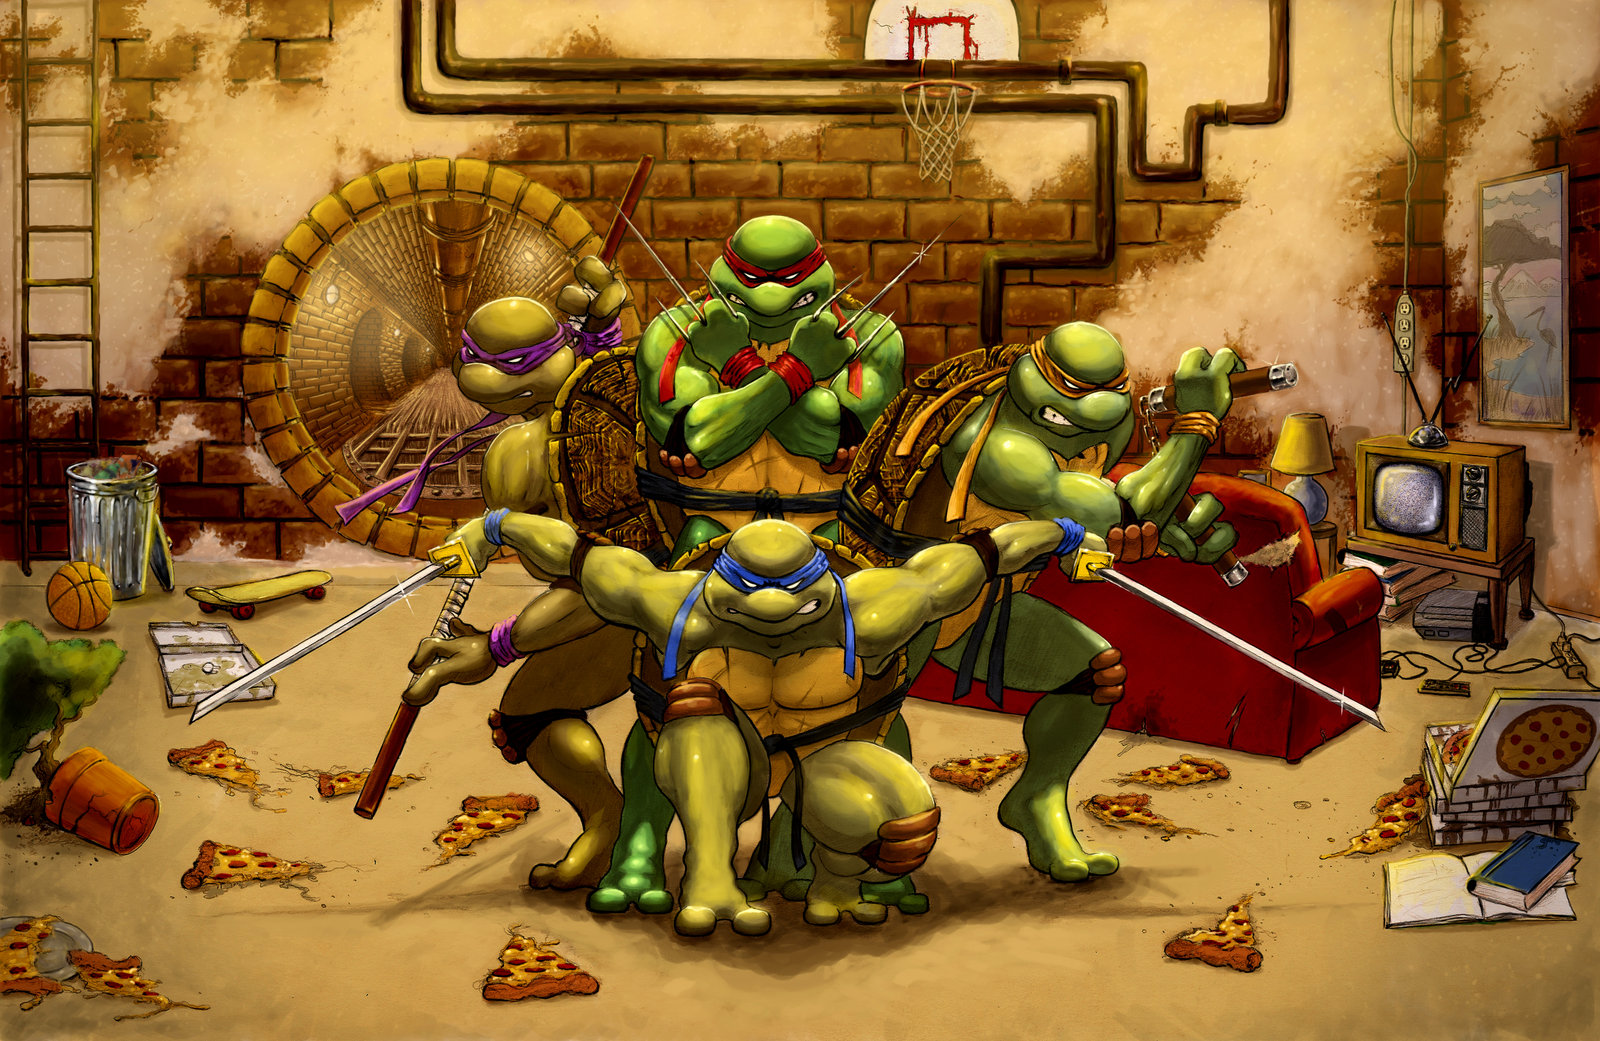 Ninja Turtles Wallpaper 4627 1600x1041 px HDWallSourcecom